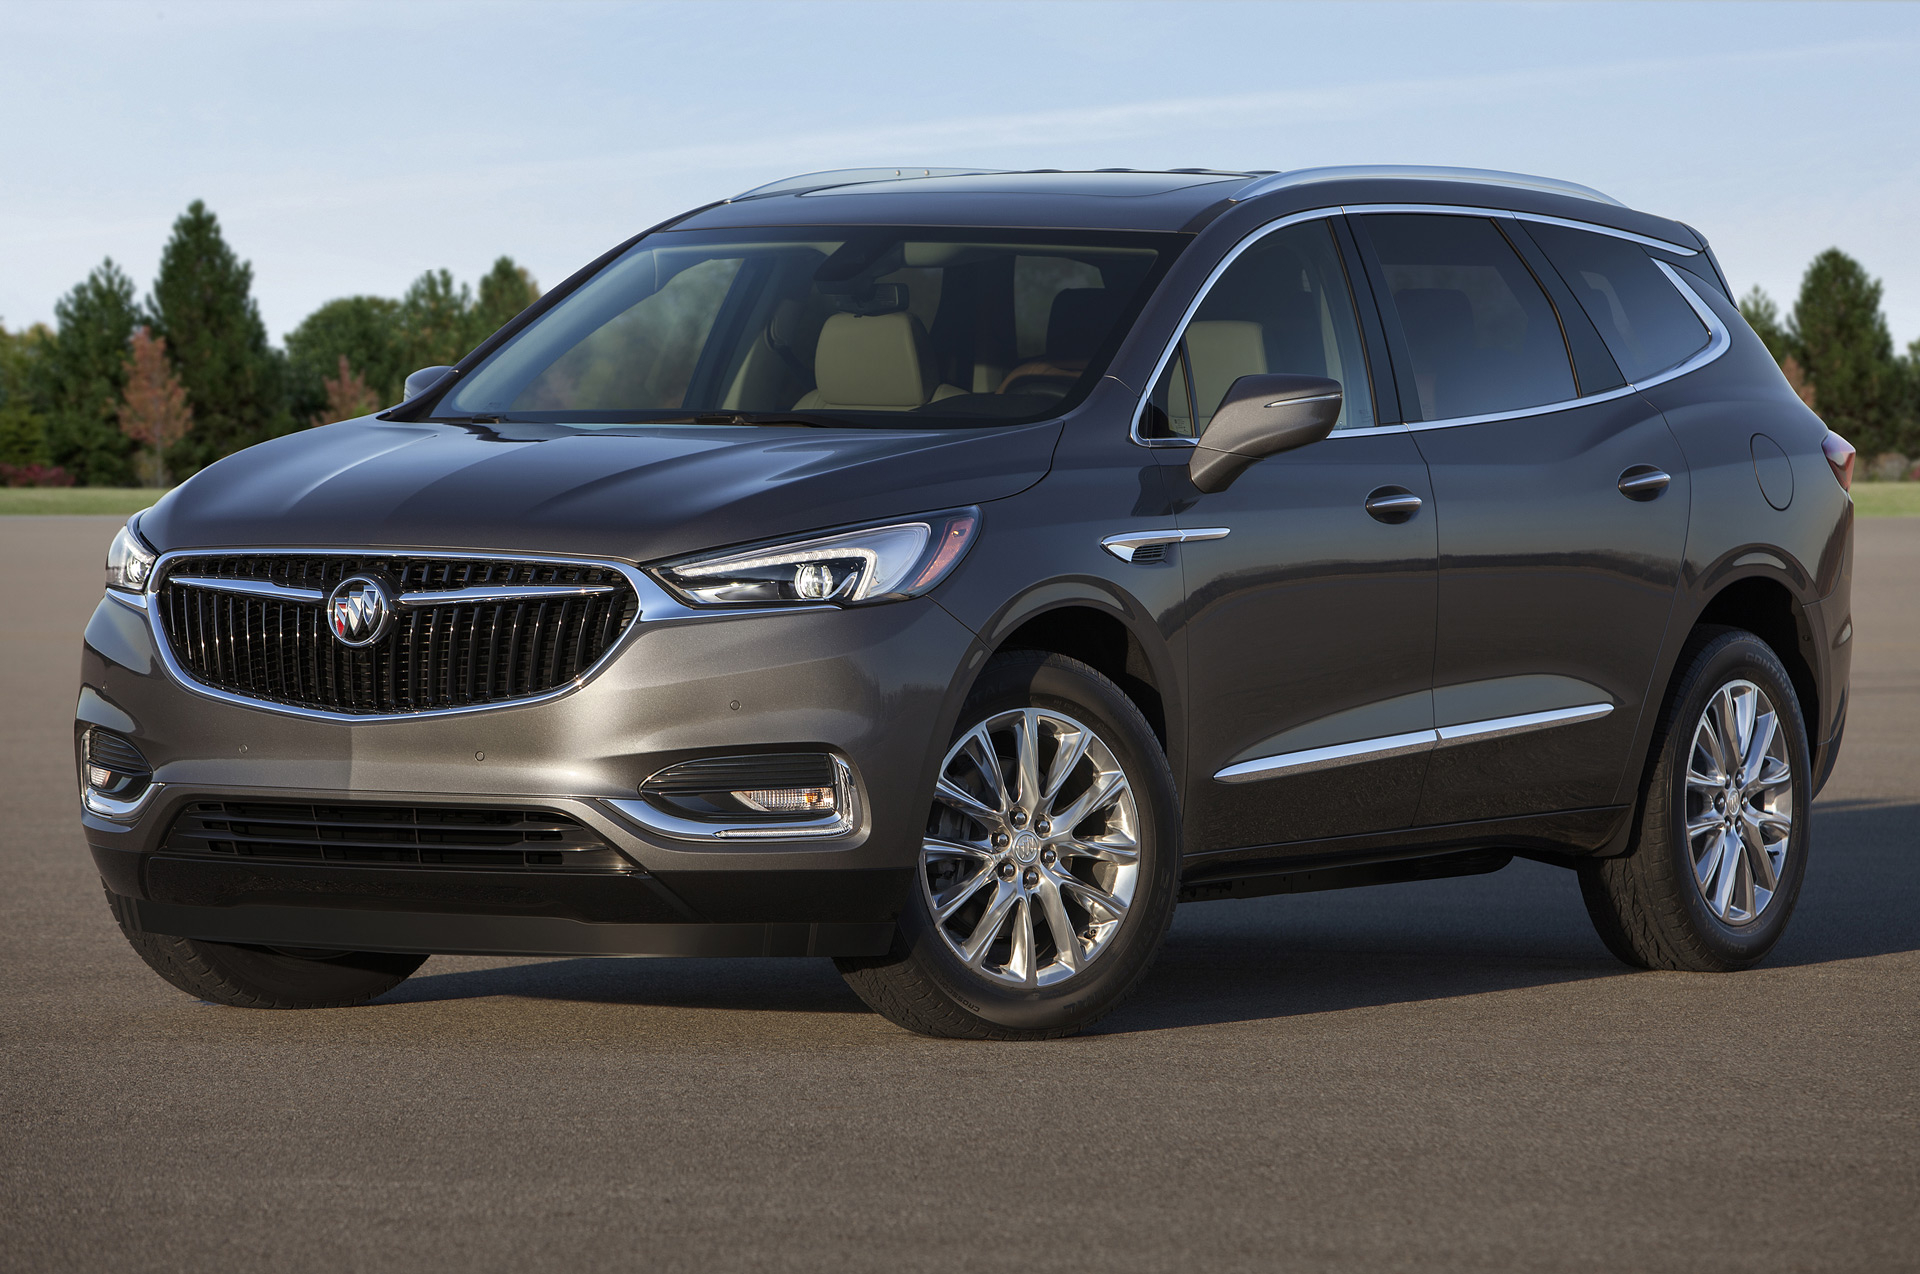 2018 Buick Enclave Video Preview Can A 2021 Buick Enclave Be Flat Towed